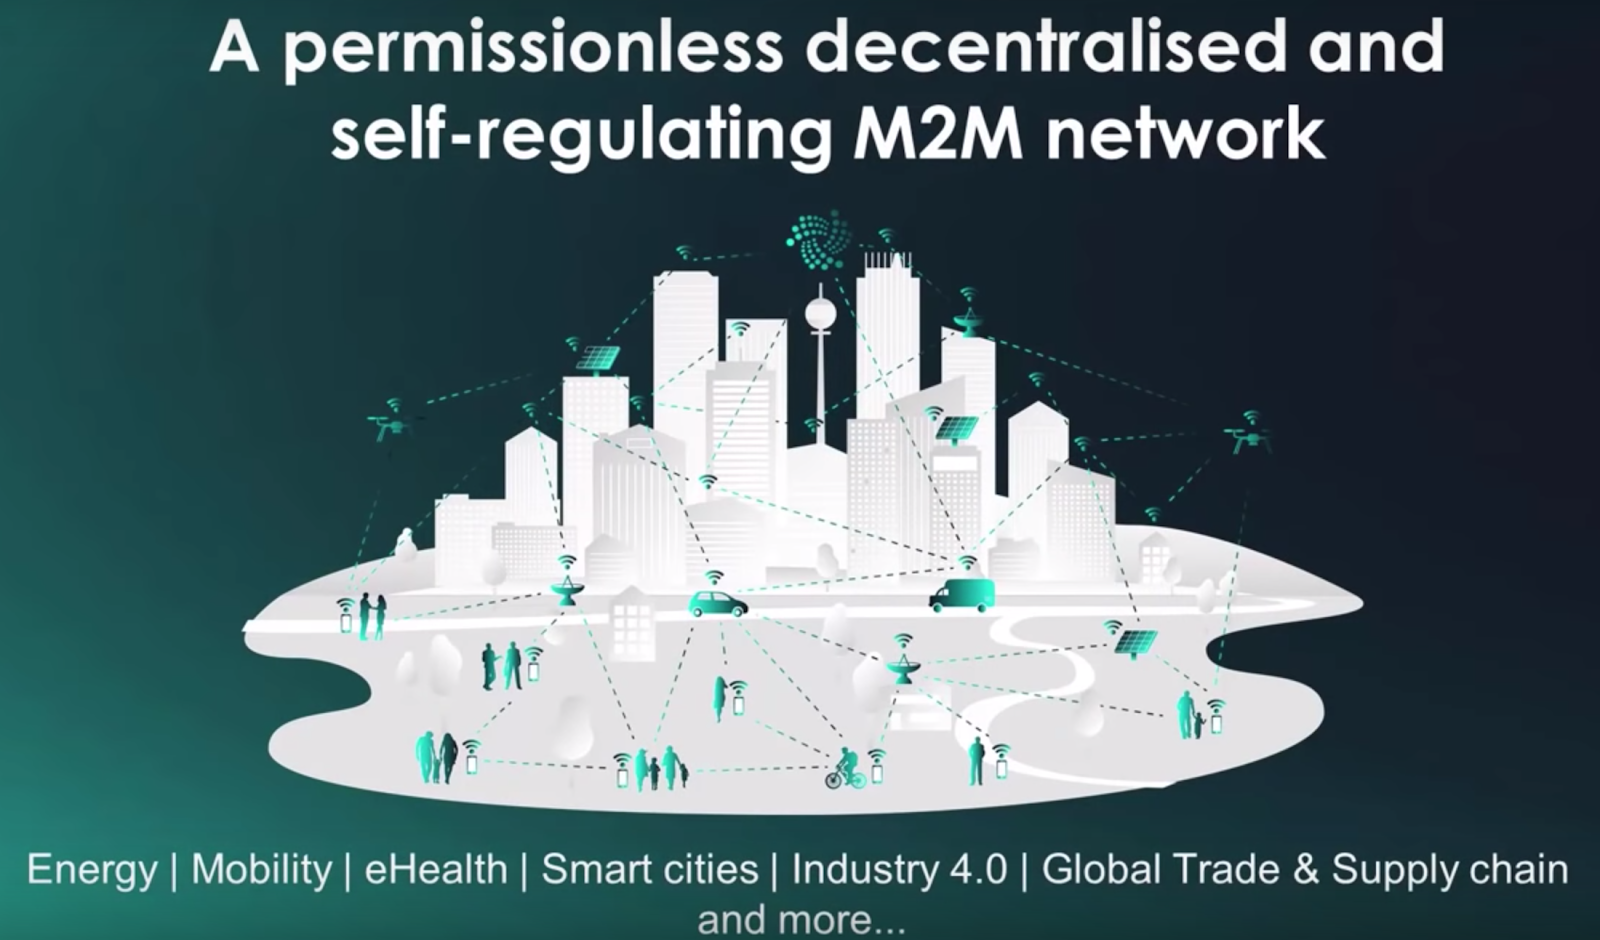 A permissionless decentralised and self-regulating Machine-to-Machine network.